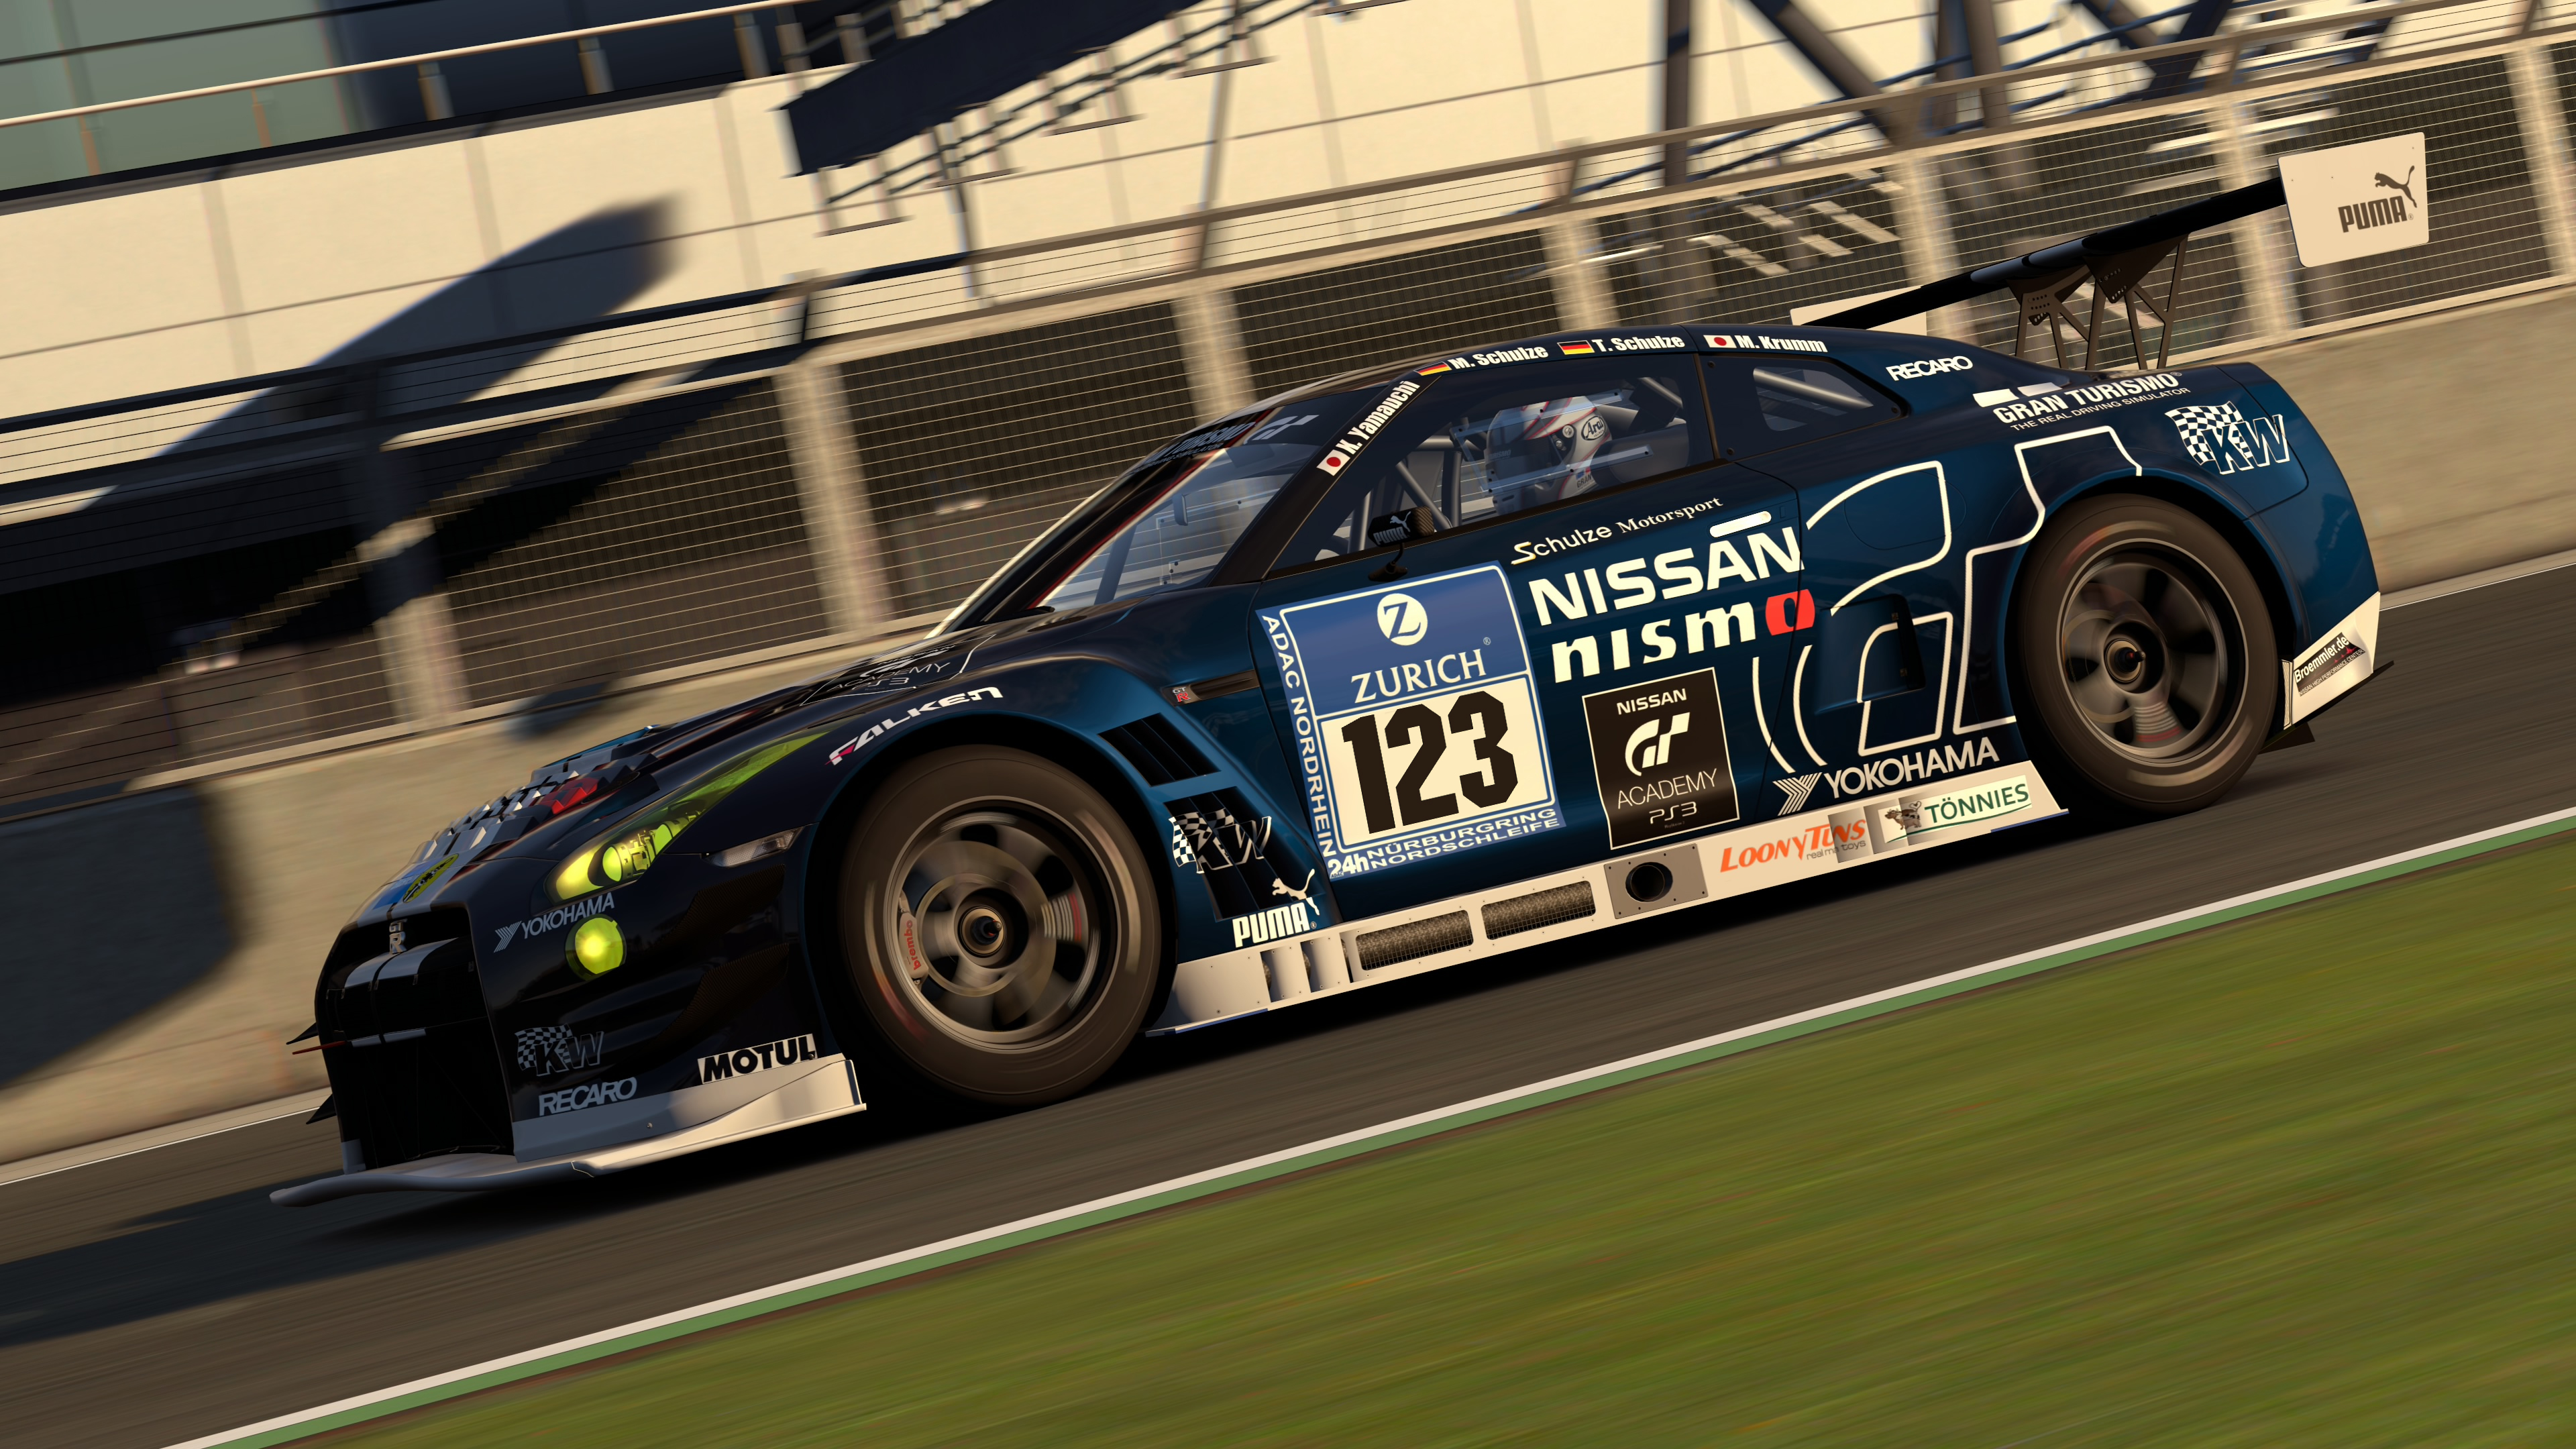 gran turismo 6 first previews video sim racing news. Black Bedroom Furniture Sets. Home Design Ideas